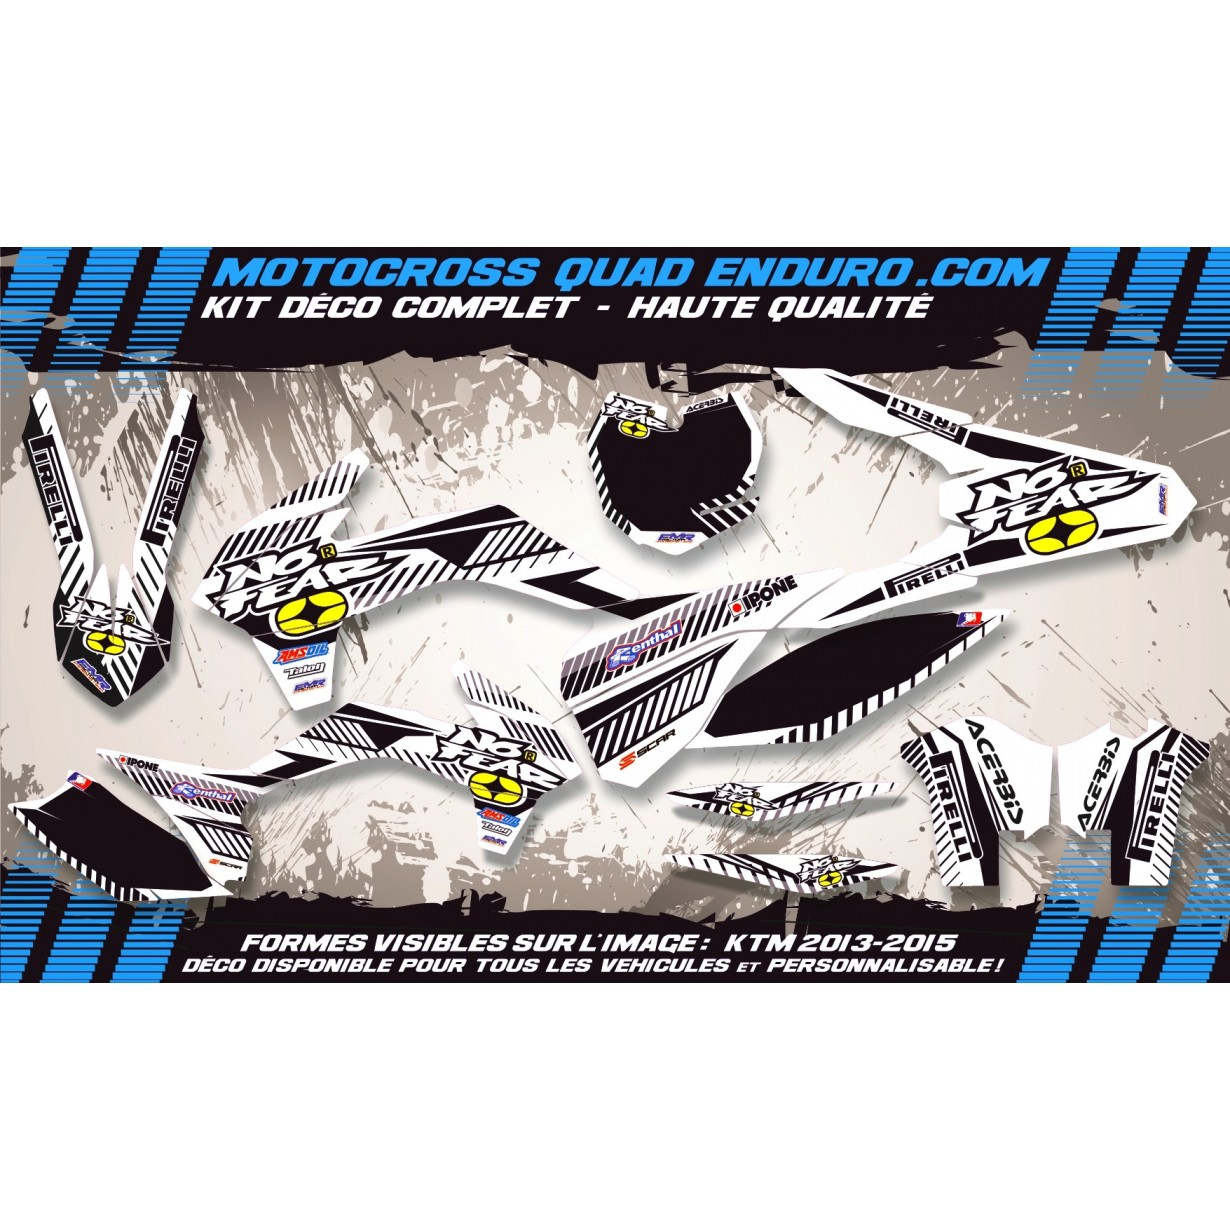 KIT DÉCO Perso 50 SX 09-15 50 SX No Fear White MA5F